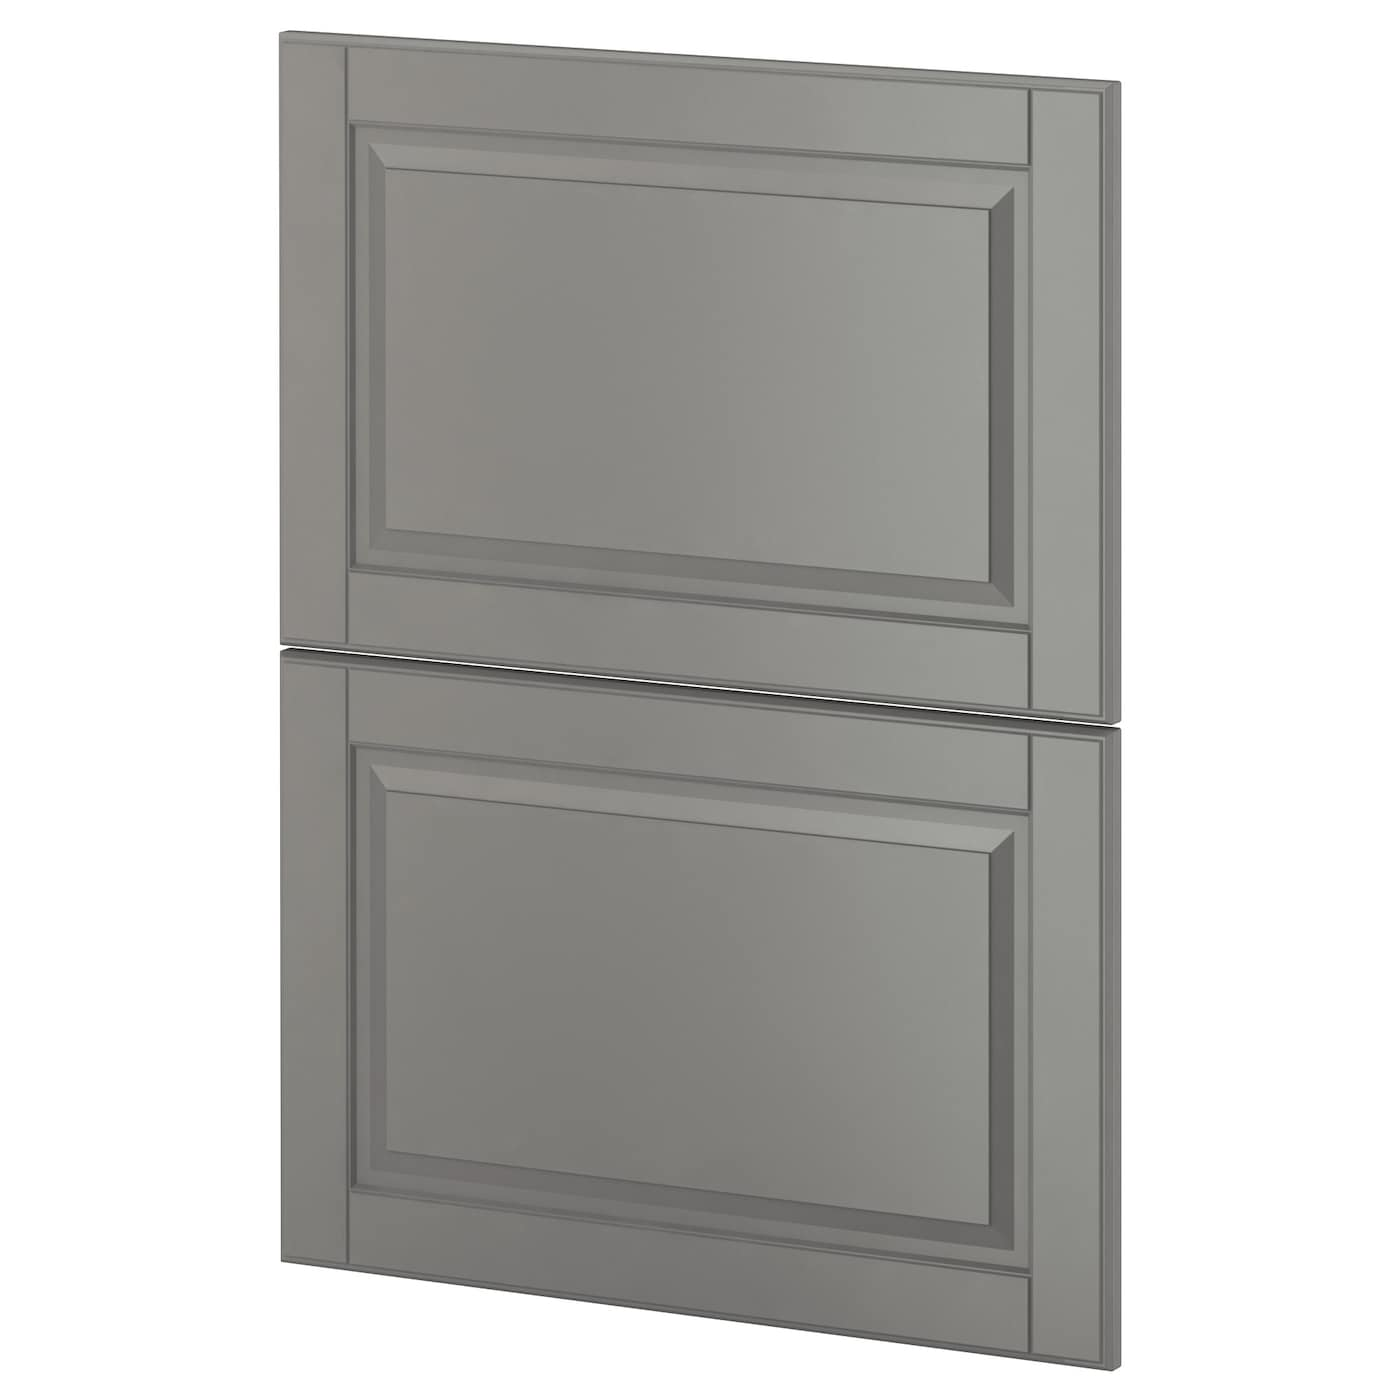 ikea cabinet fronts metod 2 fronts for dishwasher bodbyn grey 60 cm ikea 17558